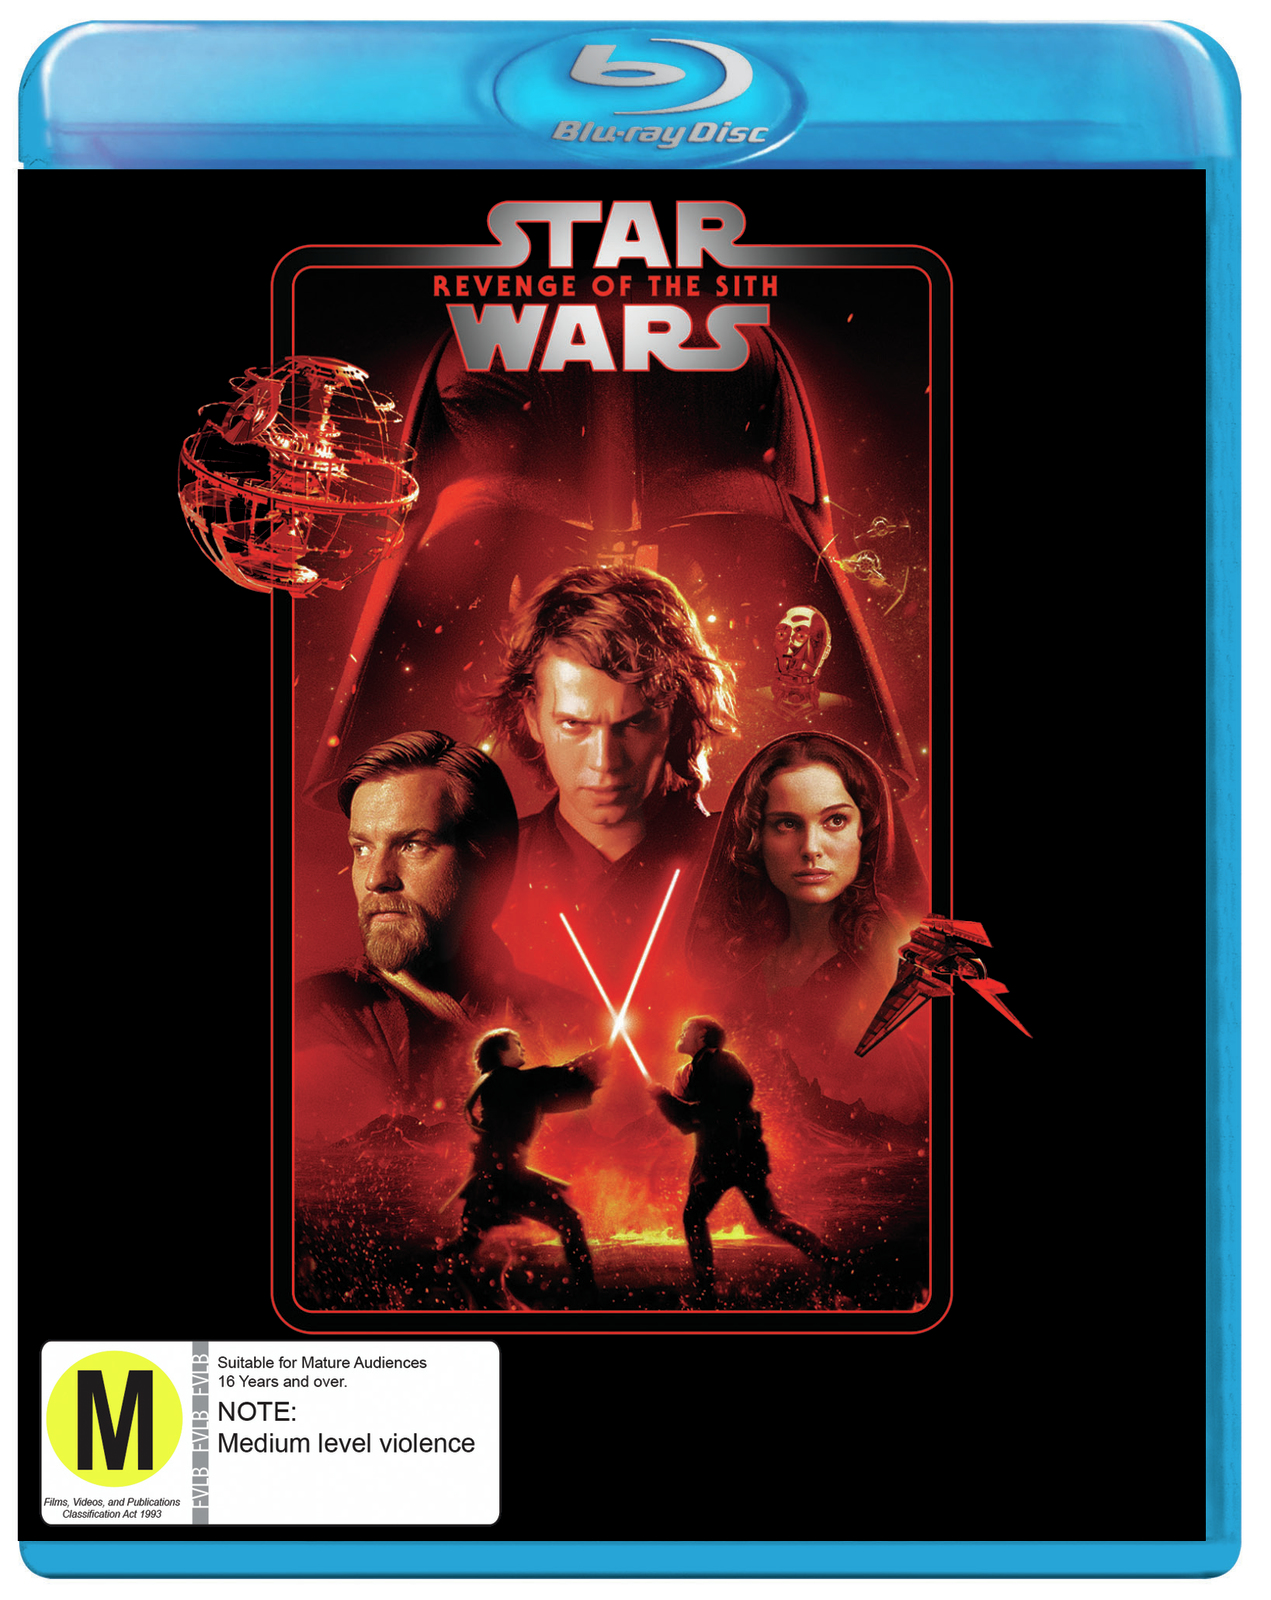 Star Wars Episode Iii Revenge Of The Sith Blu Ray In Stock Buy Now At Mighty Ape Nz